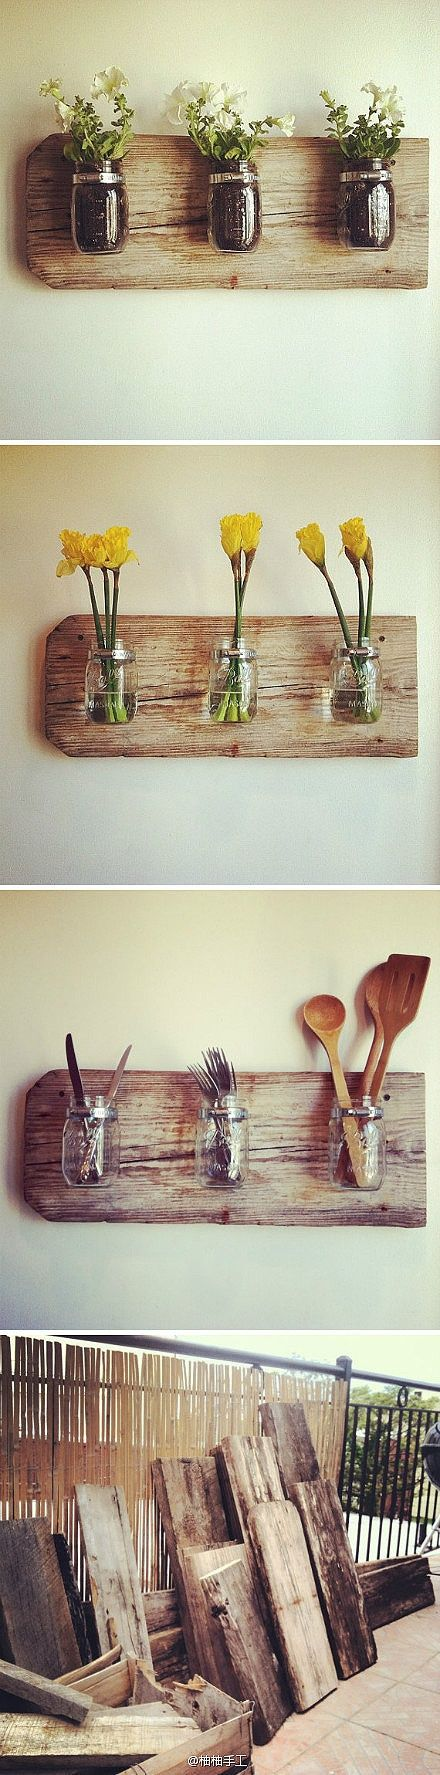 Scrap wood mason jars @ Adorable Decor : Beautiful Decorating Ideas!Adorable Decor : Beautiful Decorating Ideas!